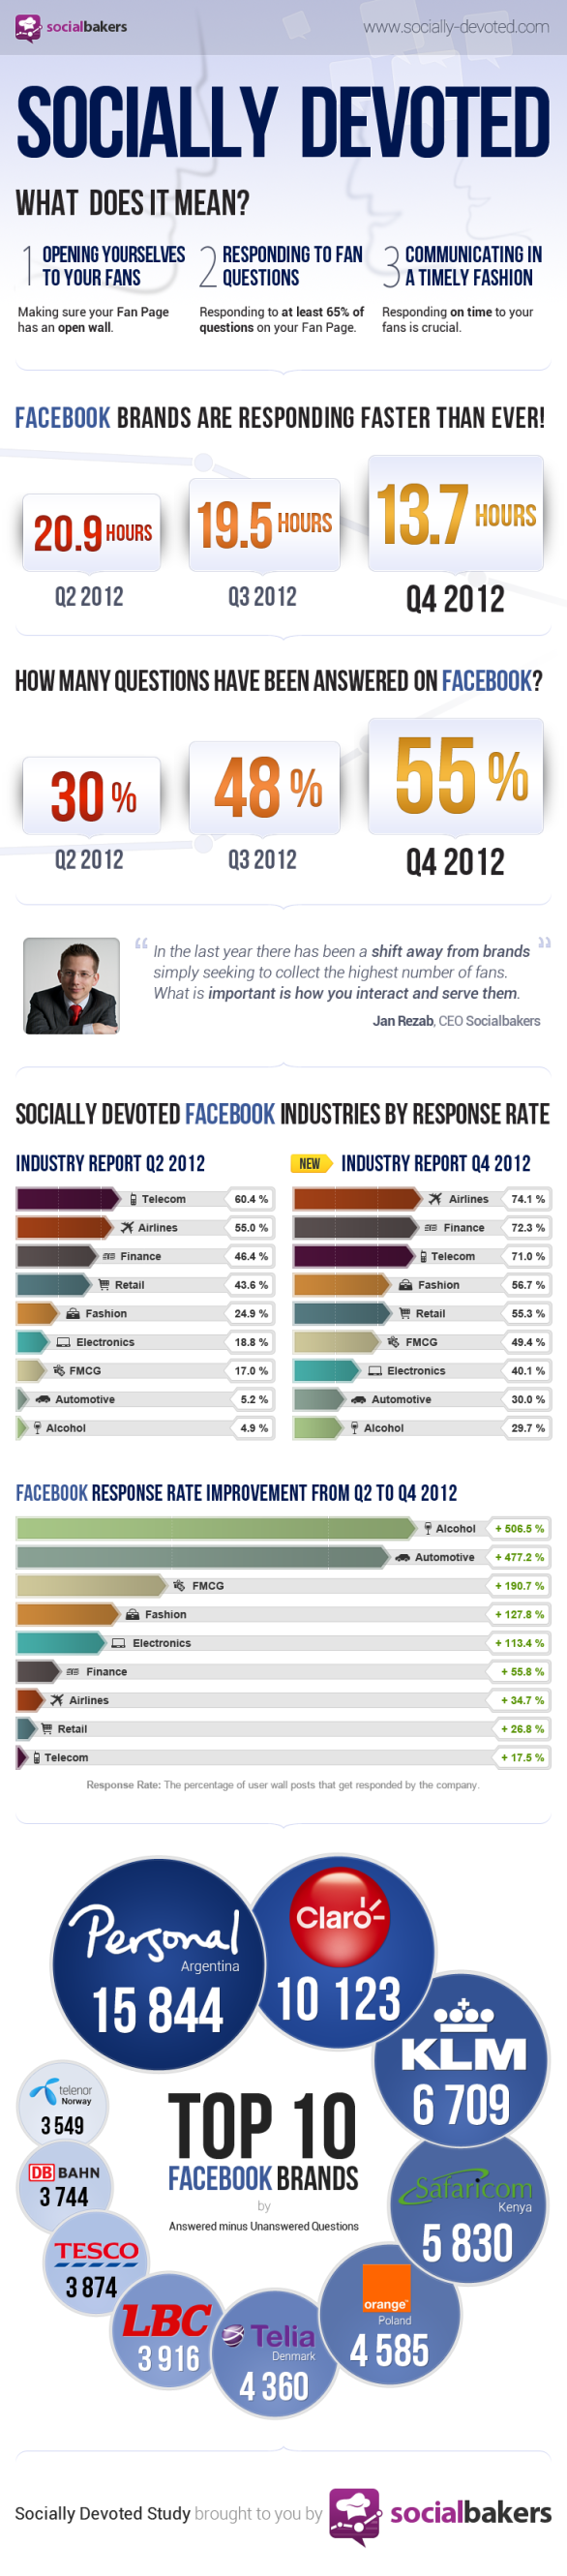 "socialbakers Studie ""Socially Devoted"", 4. Quartal 2012"